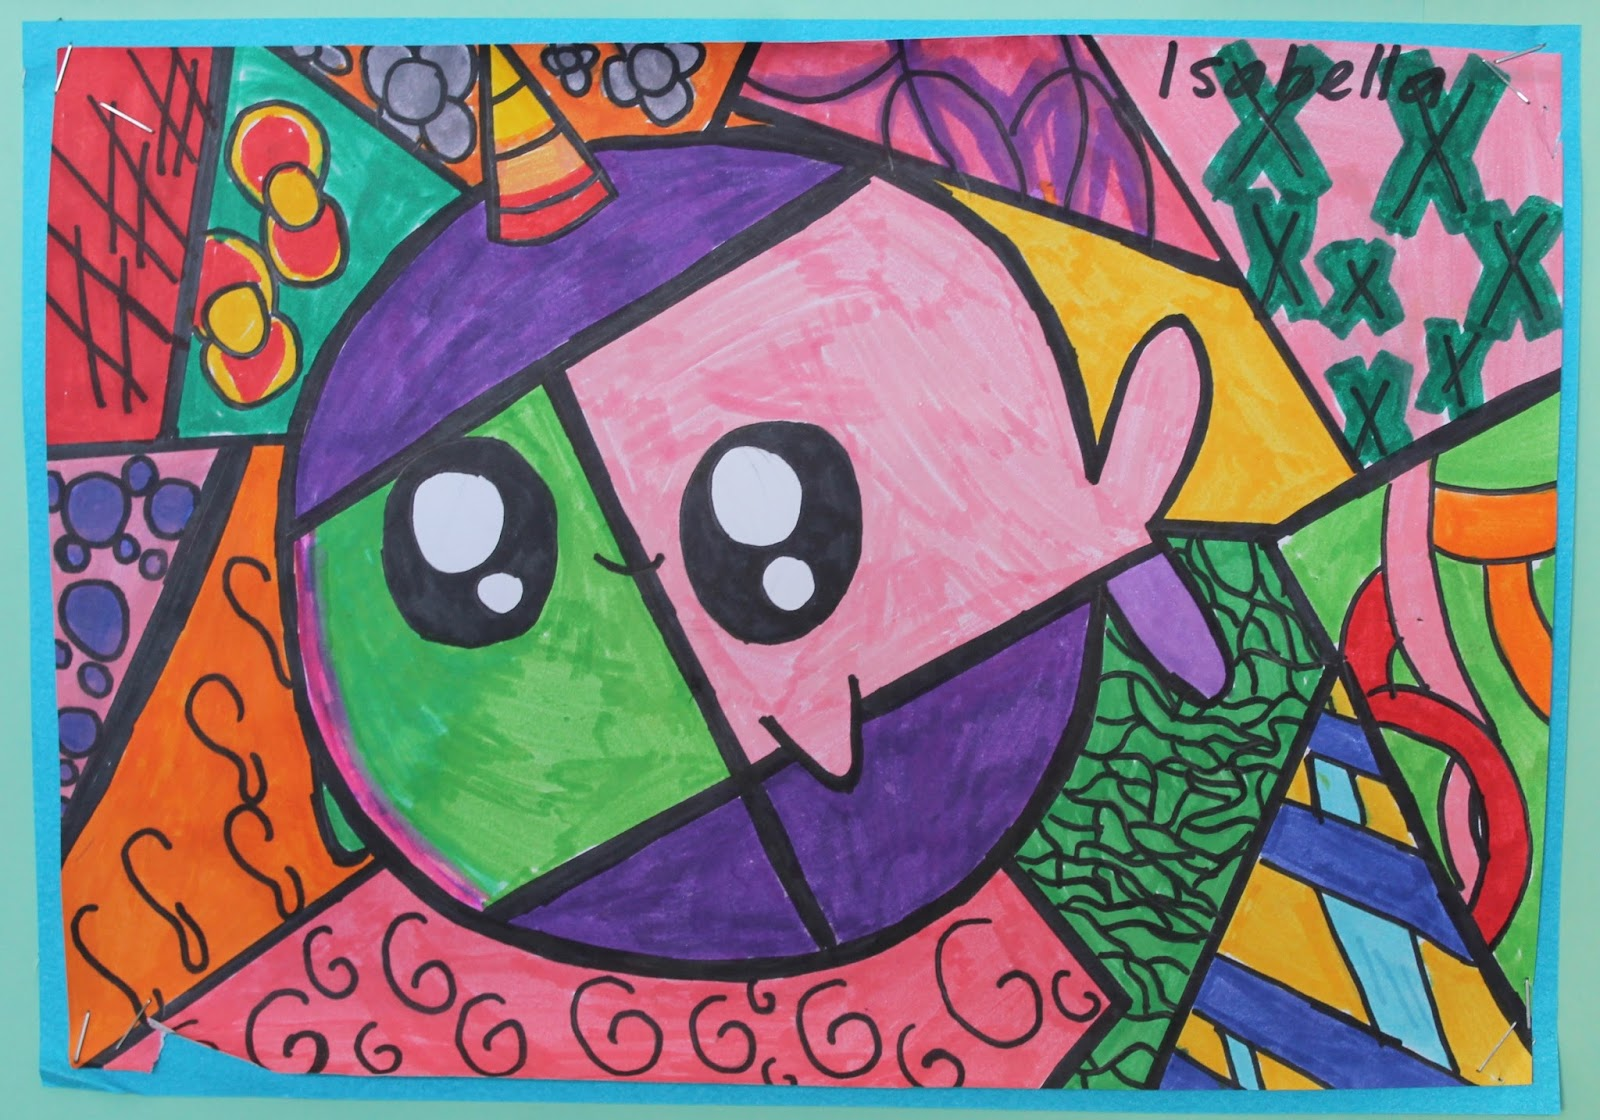 mousehouse romero britto art